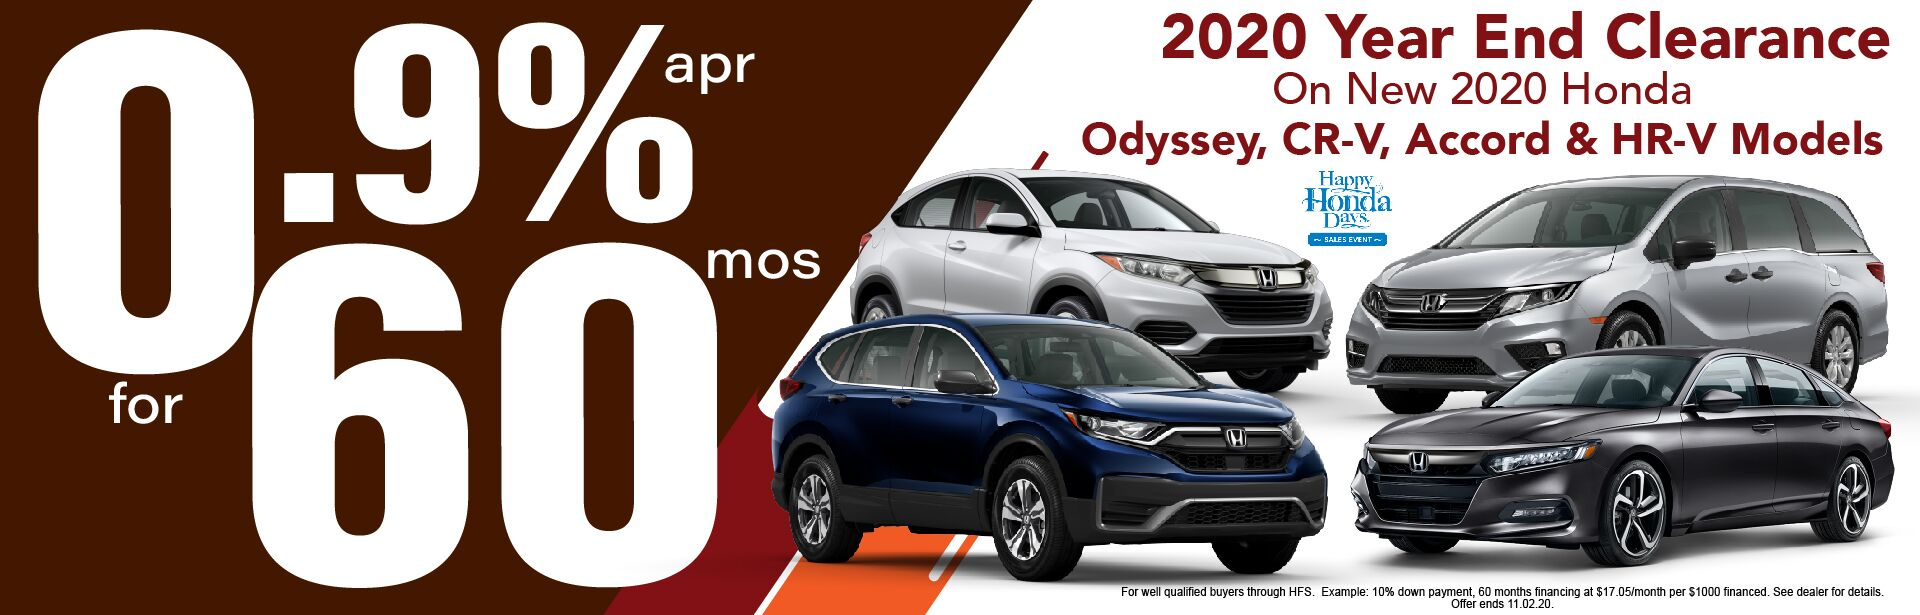 2020 Honda Year End Clearance: 0.9% APR for 60 Mos.